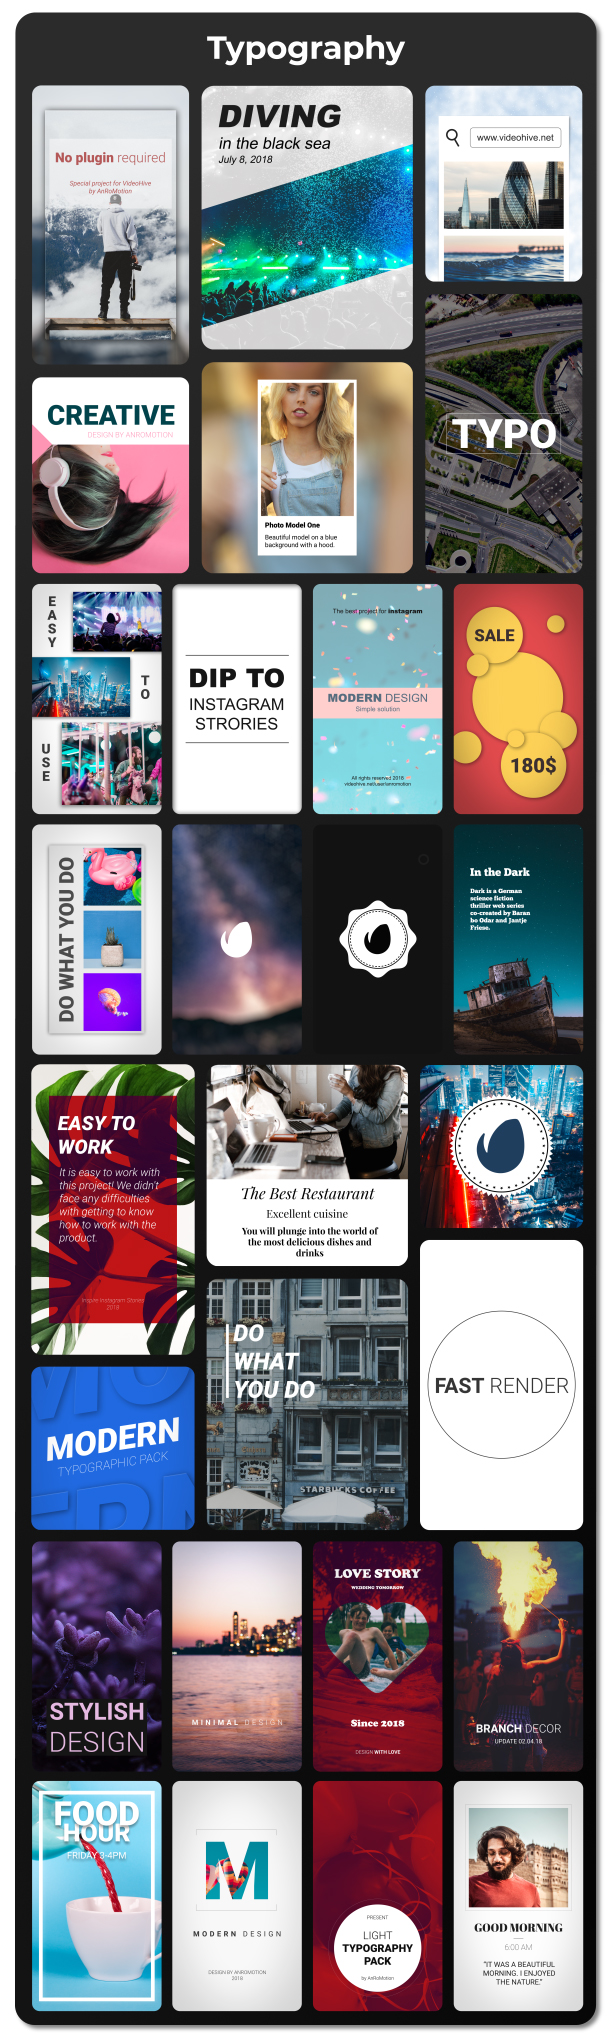 Instagram Stories Pack - 9